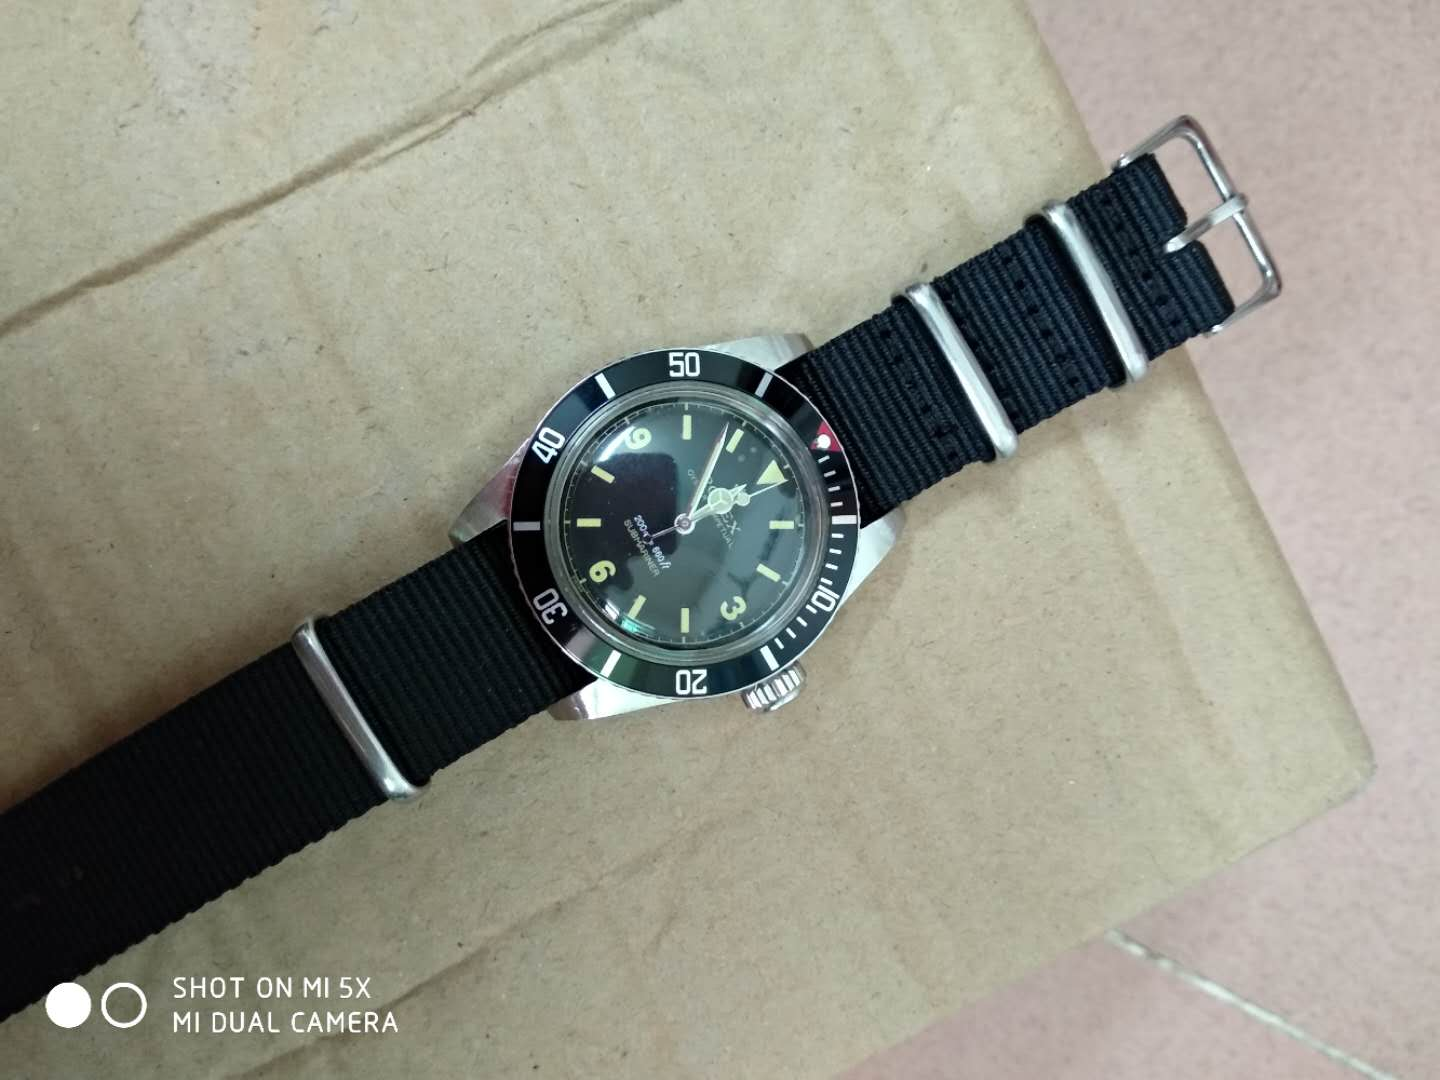 Vintage Rolex Submariner 6538 Red Dot Bezel